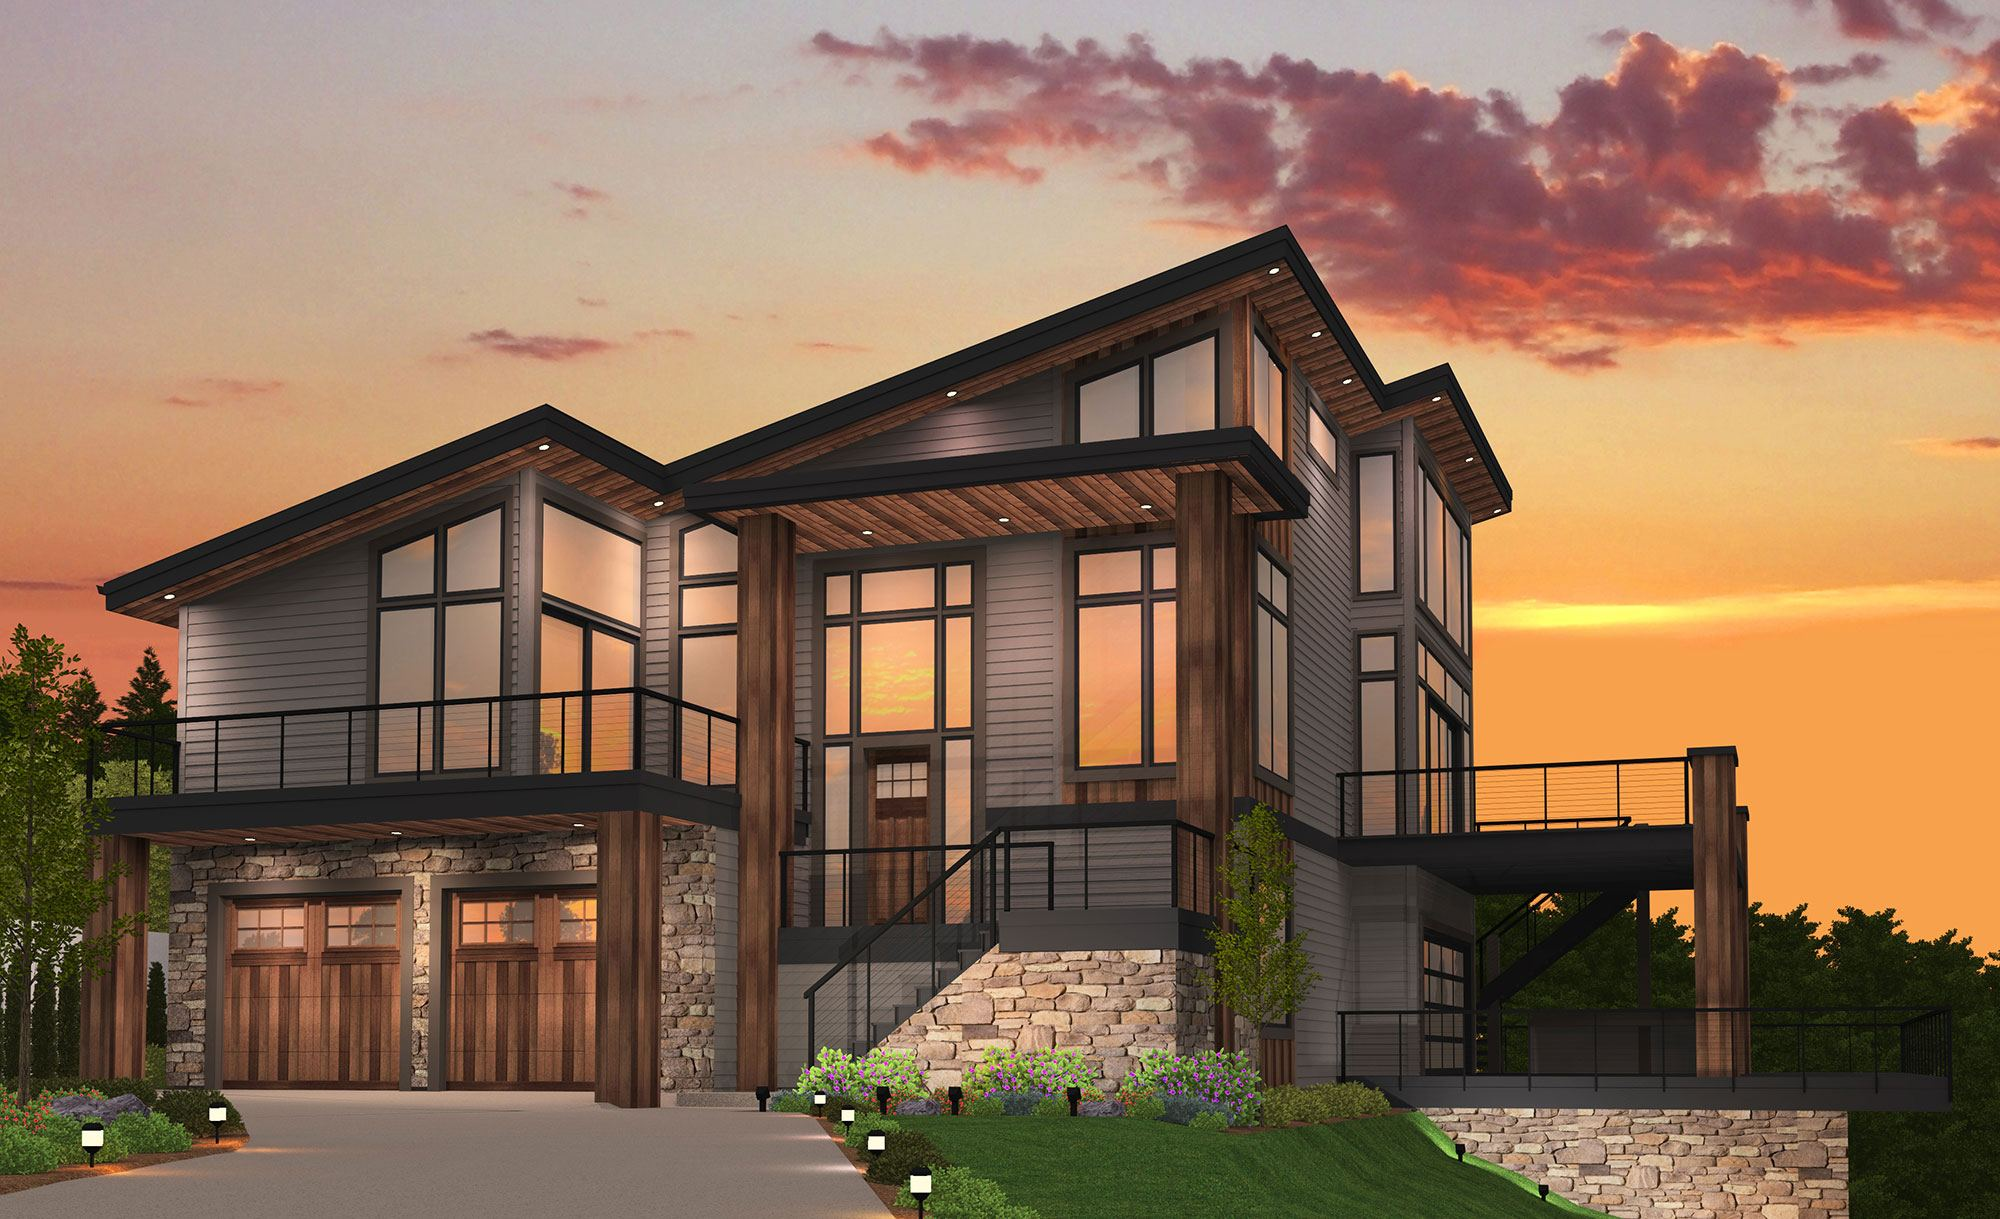 Tremendous Modern Lodge House Plans Unique Lodge Home Plans With Garages Download Free Architecture Designs Grimeyleaguecom